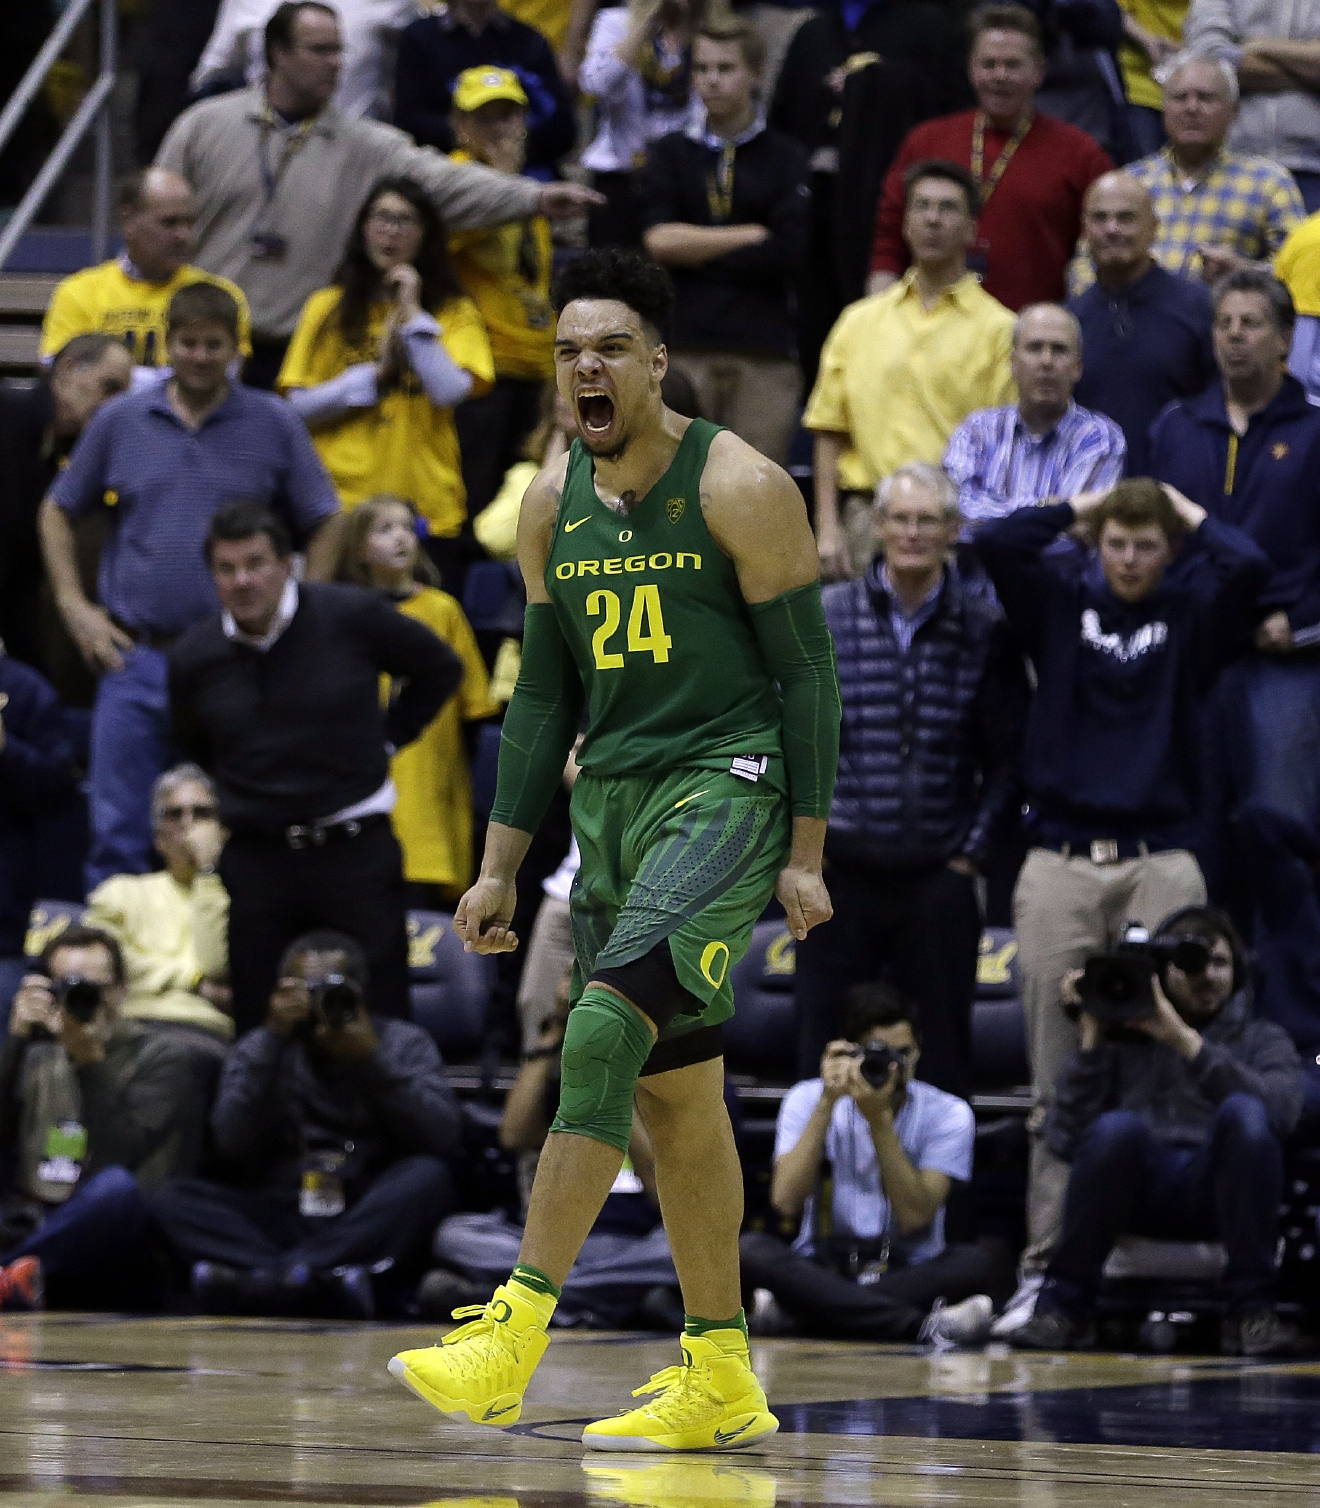 Oregon's Dillon Brooks (24) celebrates after making the game winning score against California in the second half of an NCAA college basketball game, Wednesday, Feb. 22, 2017, in Berkeley, Calif. Oregon won 68-65. (AP Photo/Ben Margot)